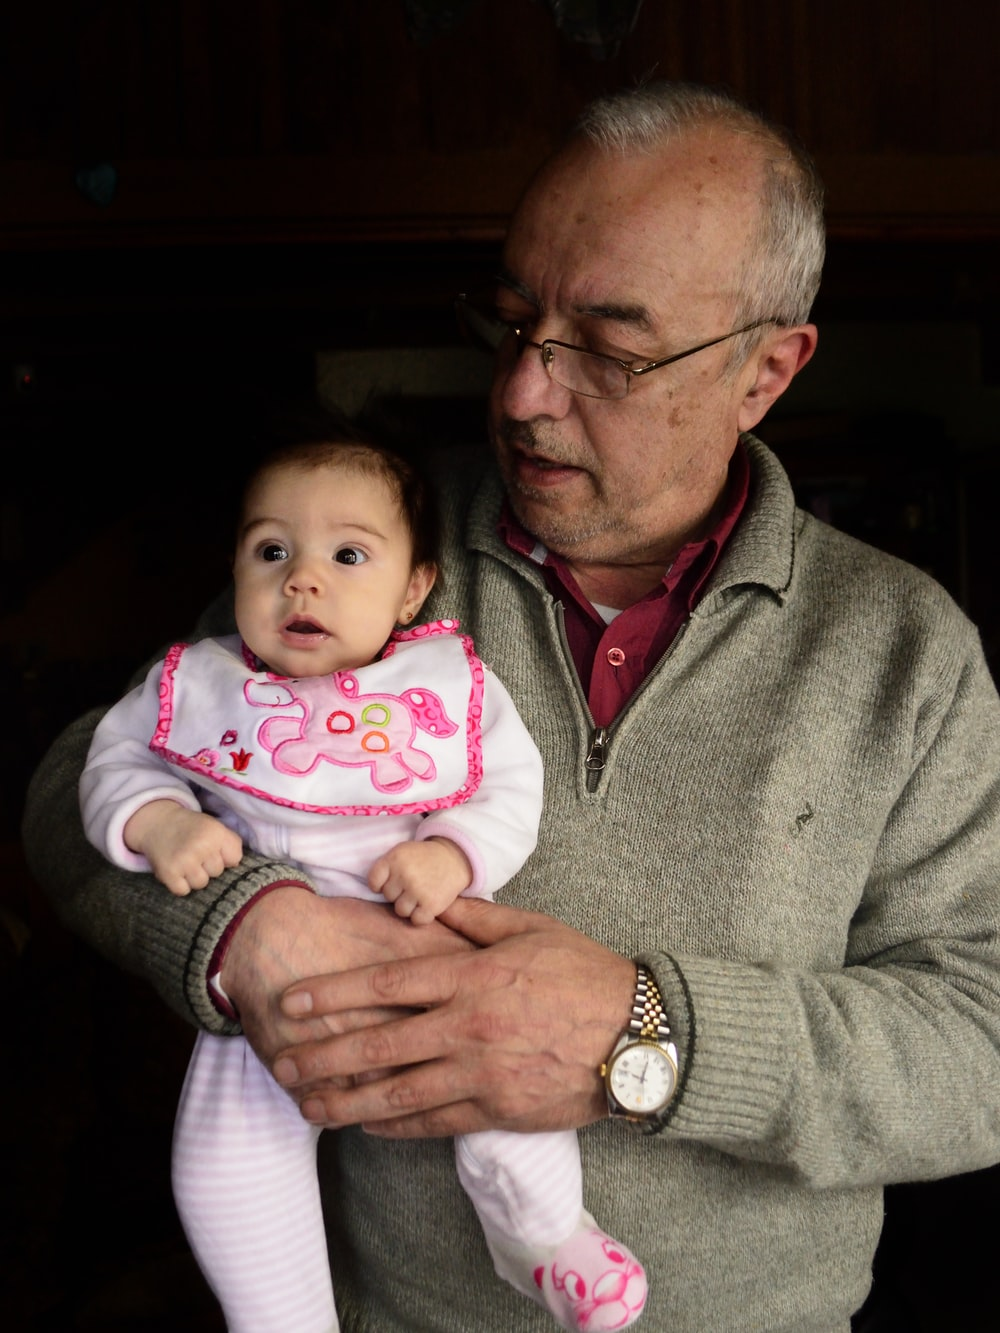 man carrying a baby girl in his arms